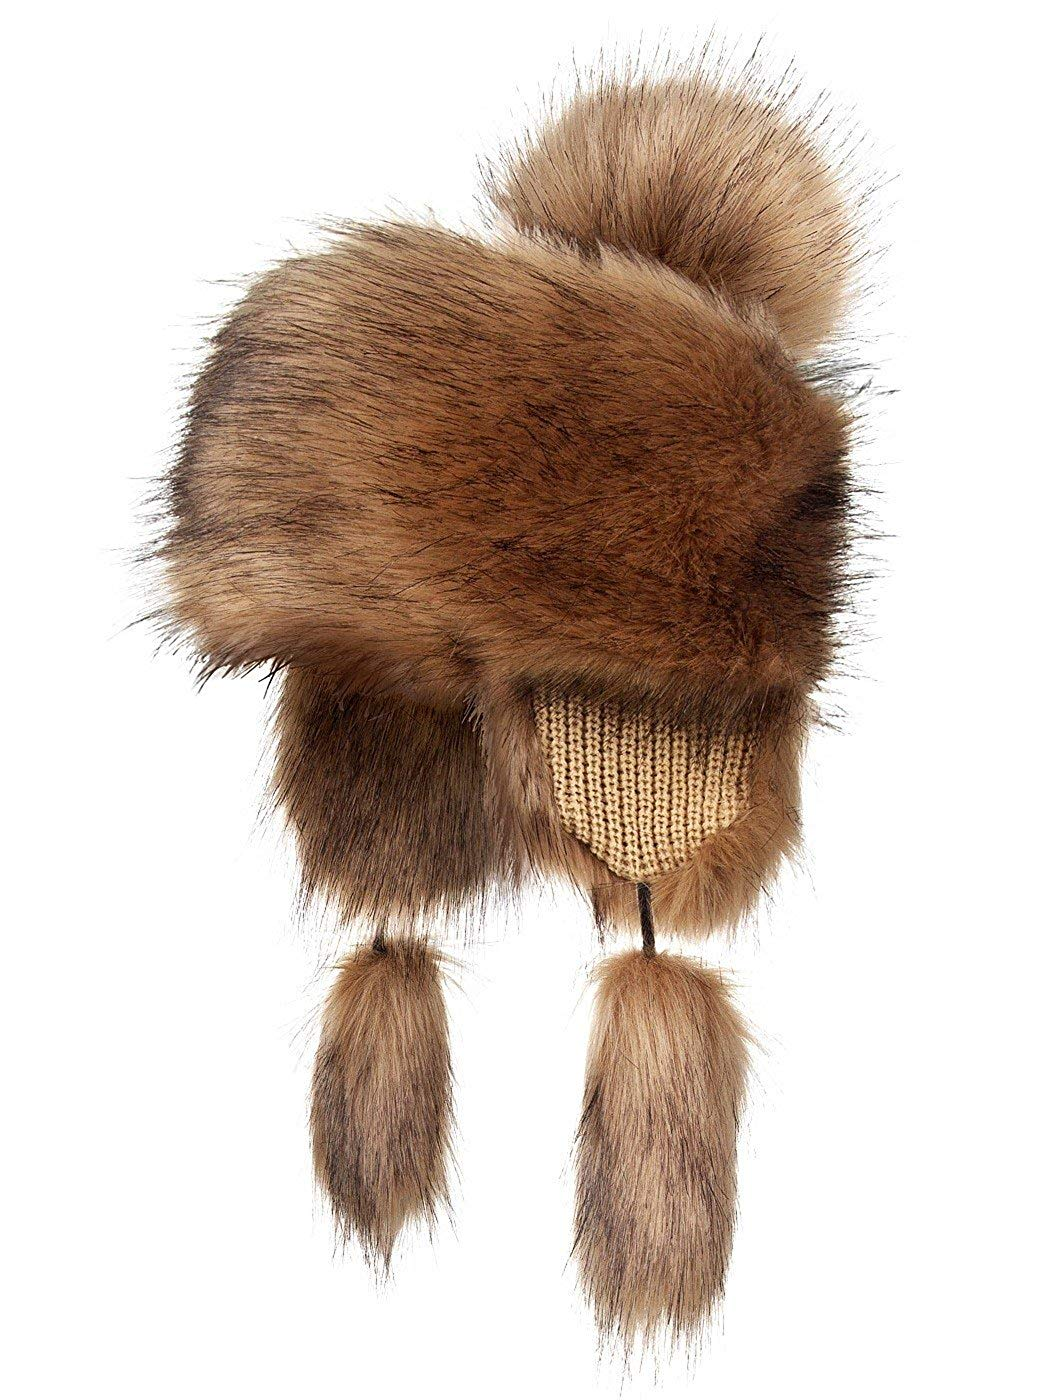 c75e9a346 Cheap Russian Hat Women Faux Fur, find Russian Hat Women Faux Fur ...